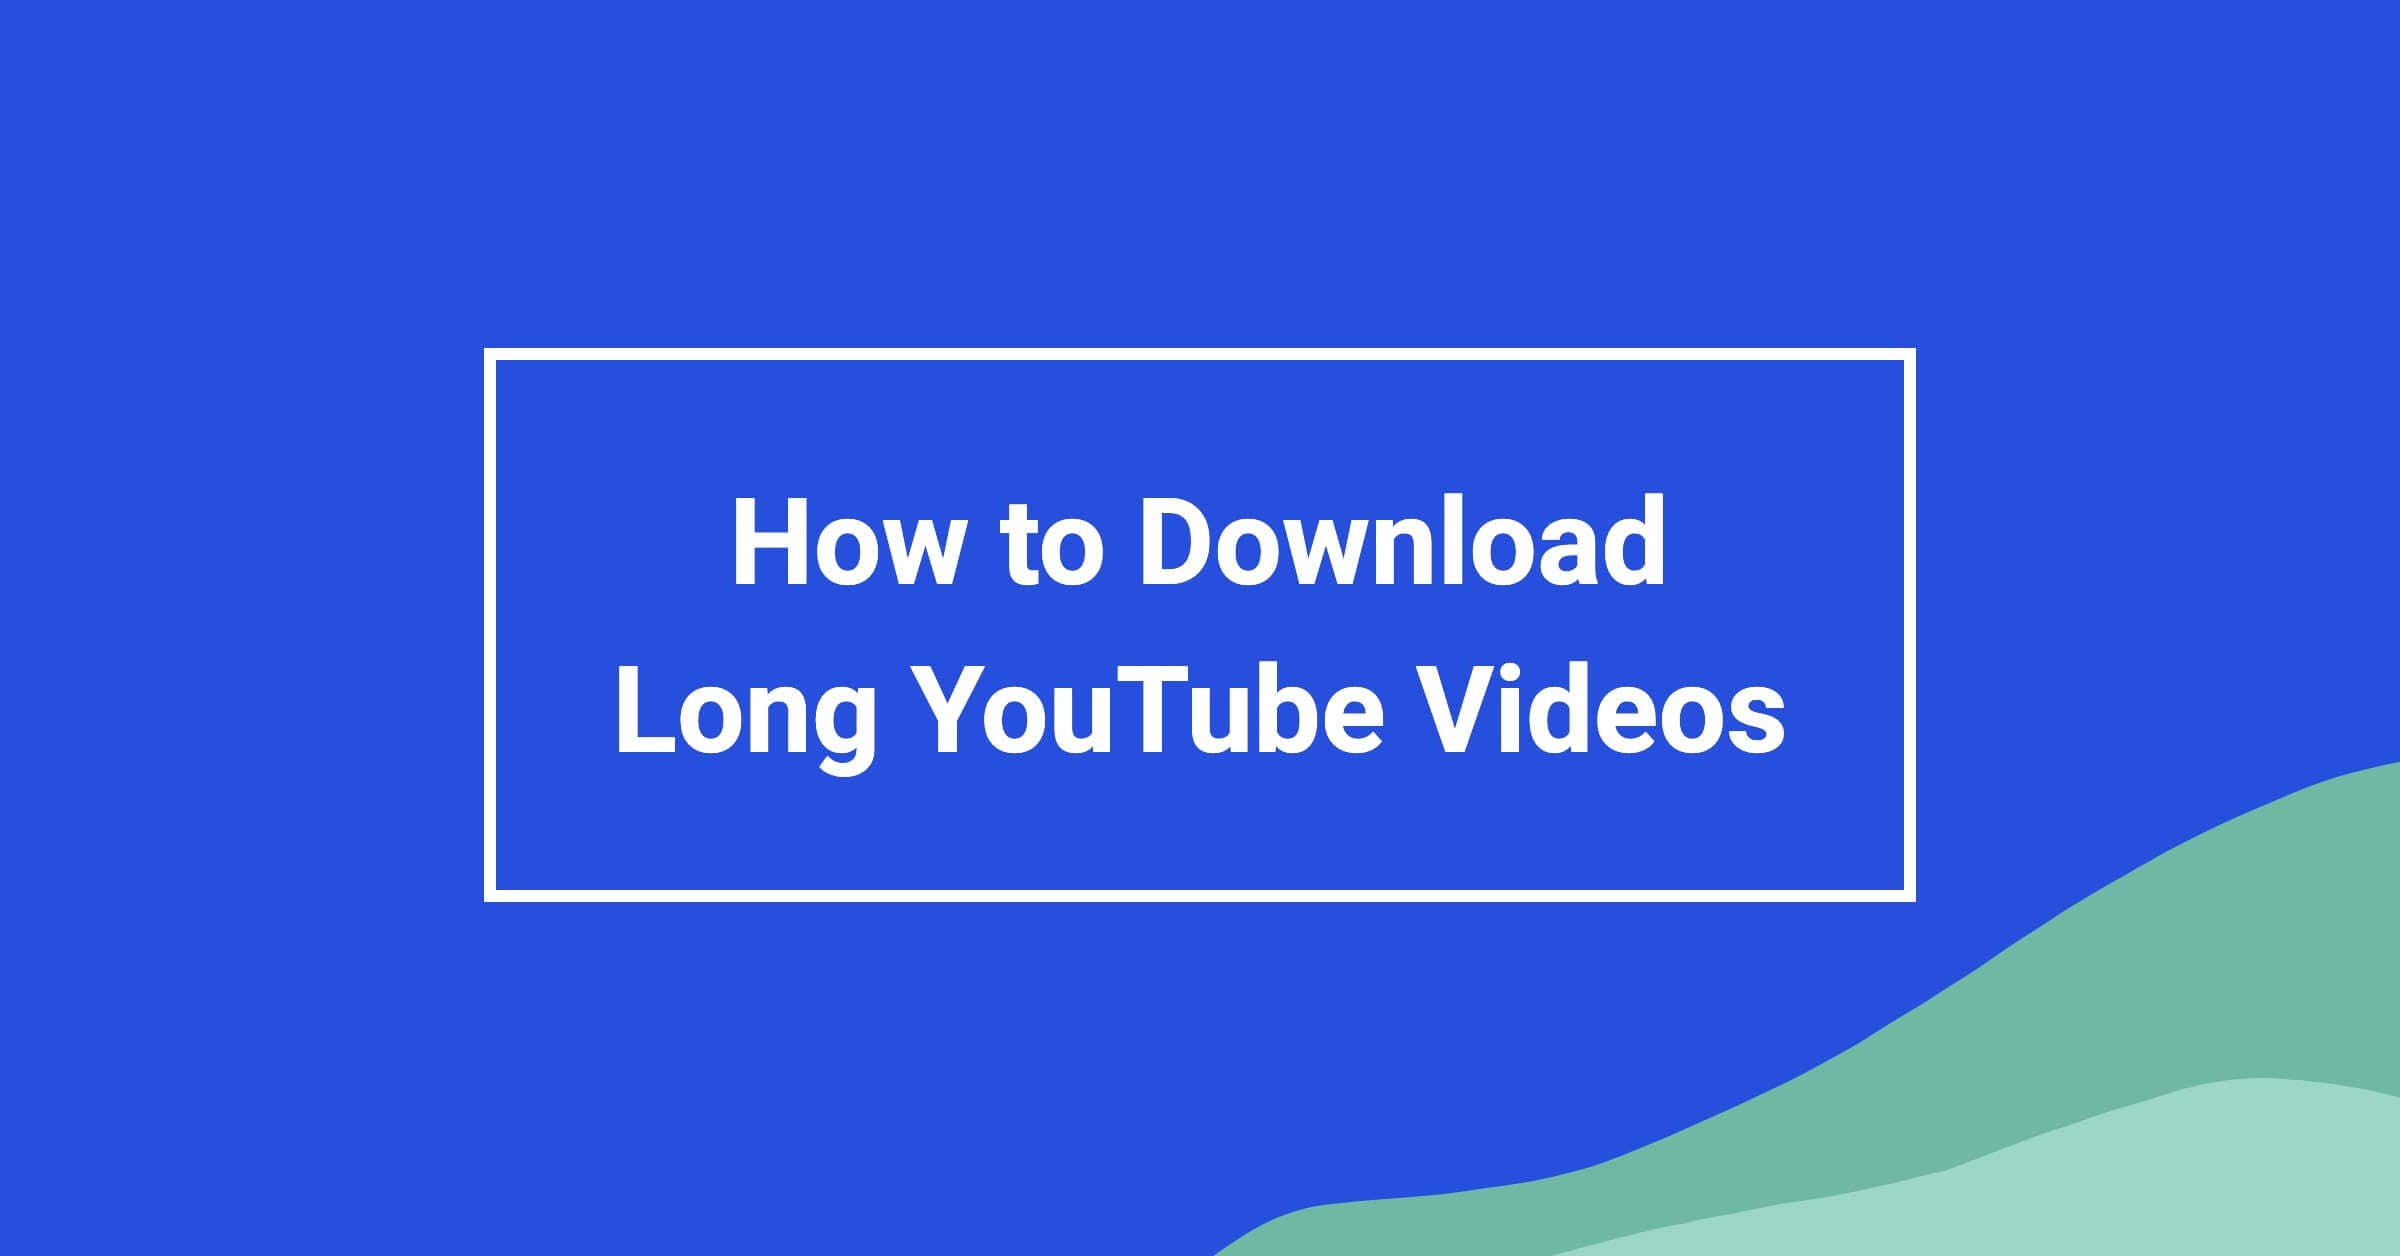 How to Download Long YouTube Videos in MP4 or MP3